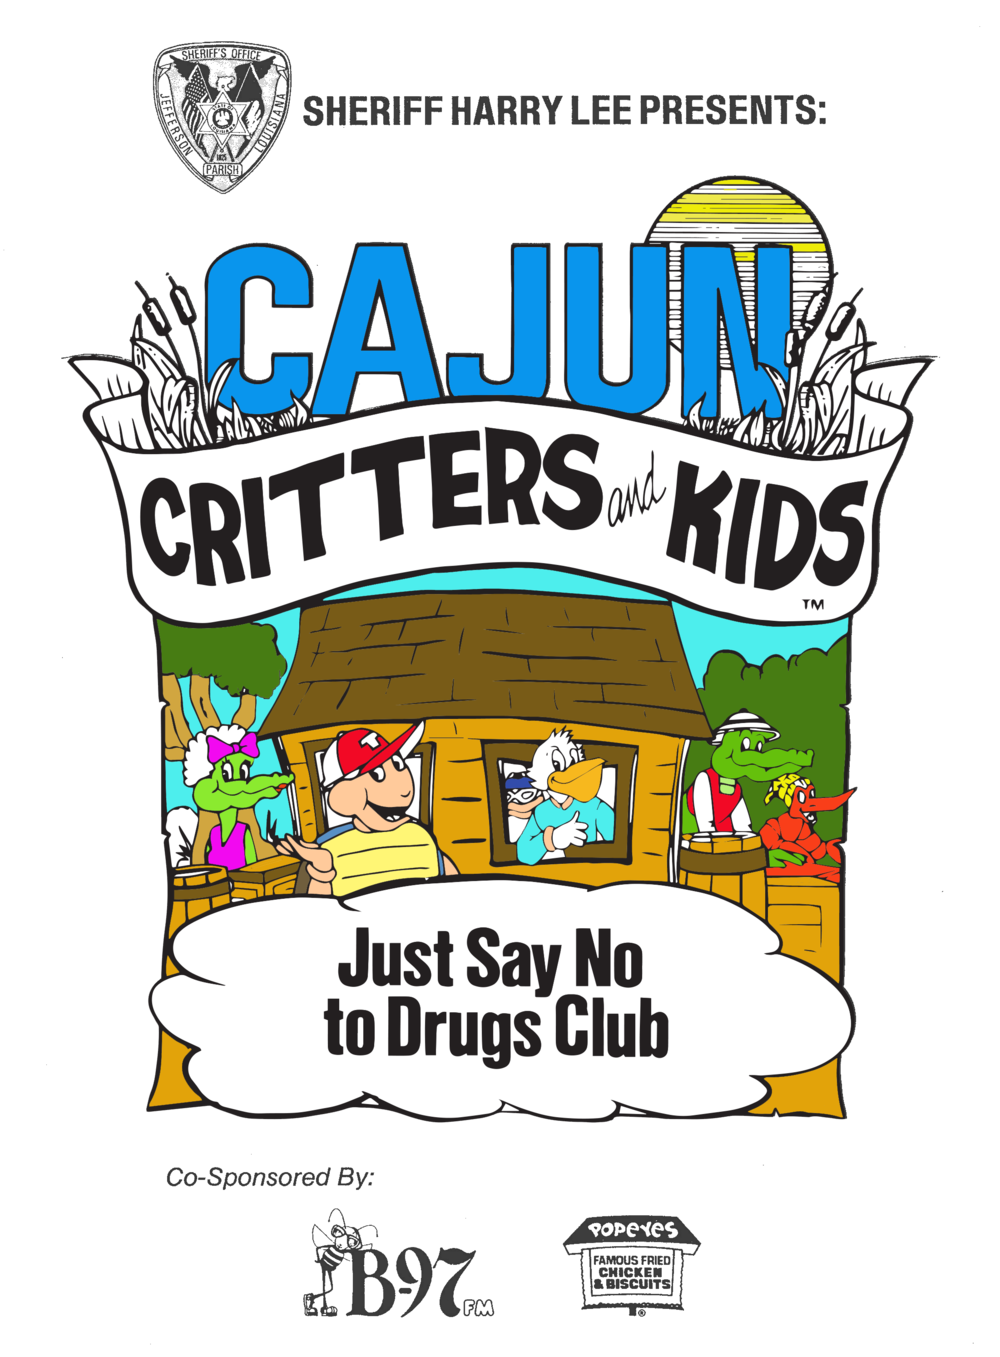 Seymore D Fair | 1987 Cajun Critters Just Say No to Drugs Coloring Book Cover.png